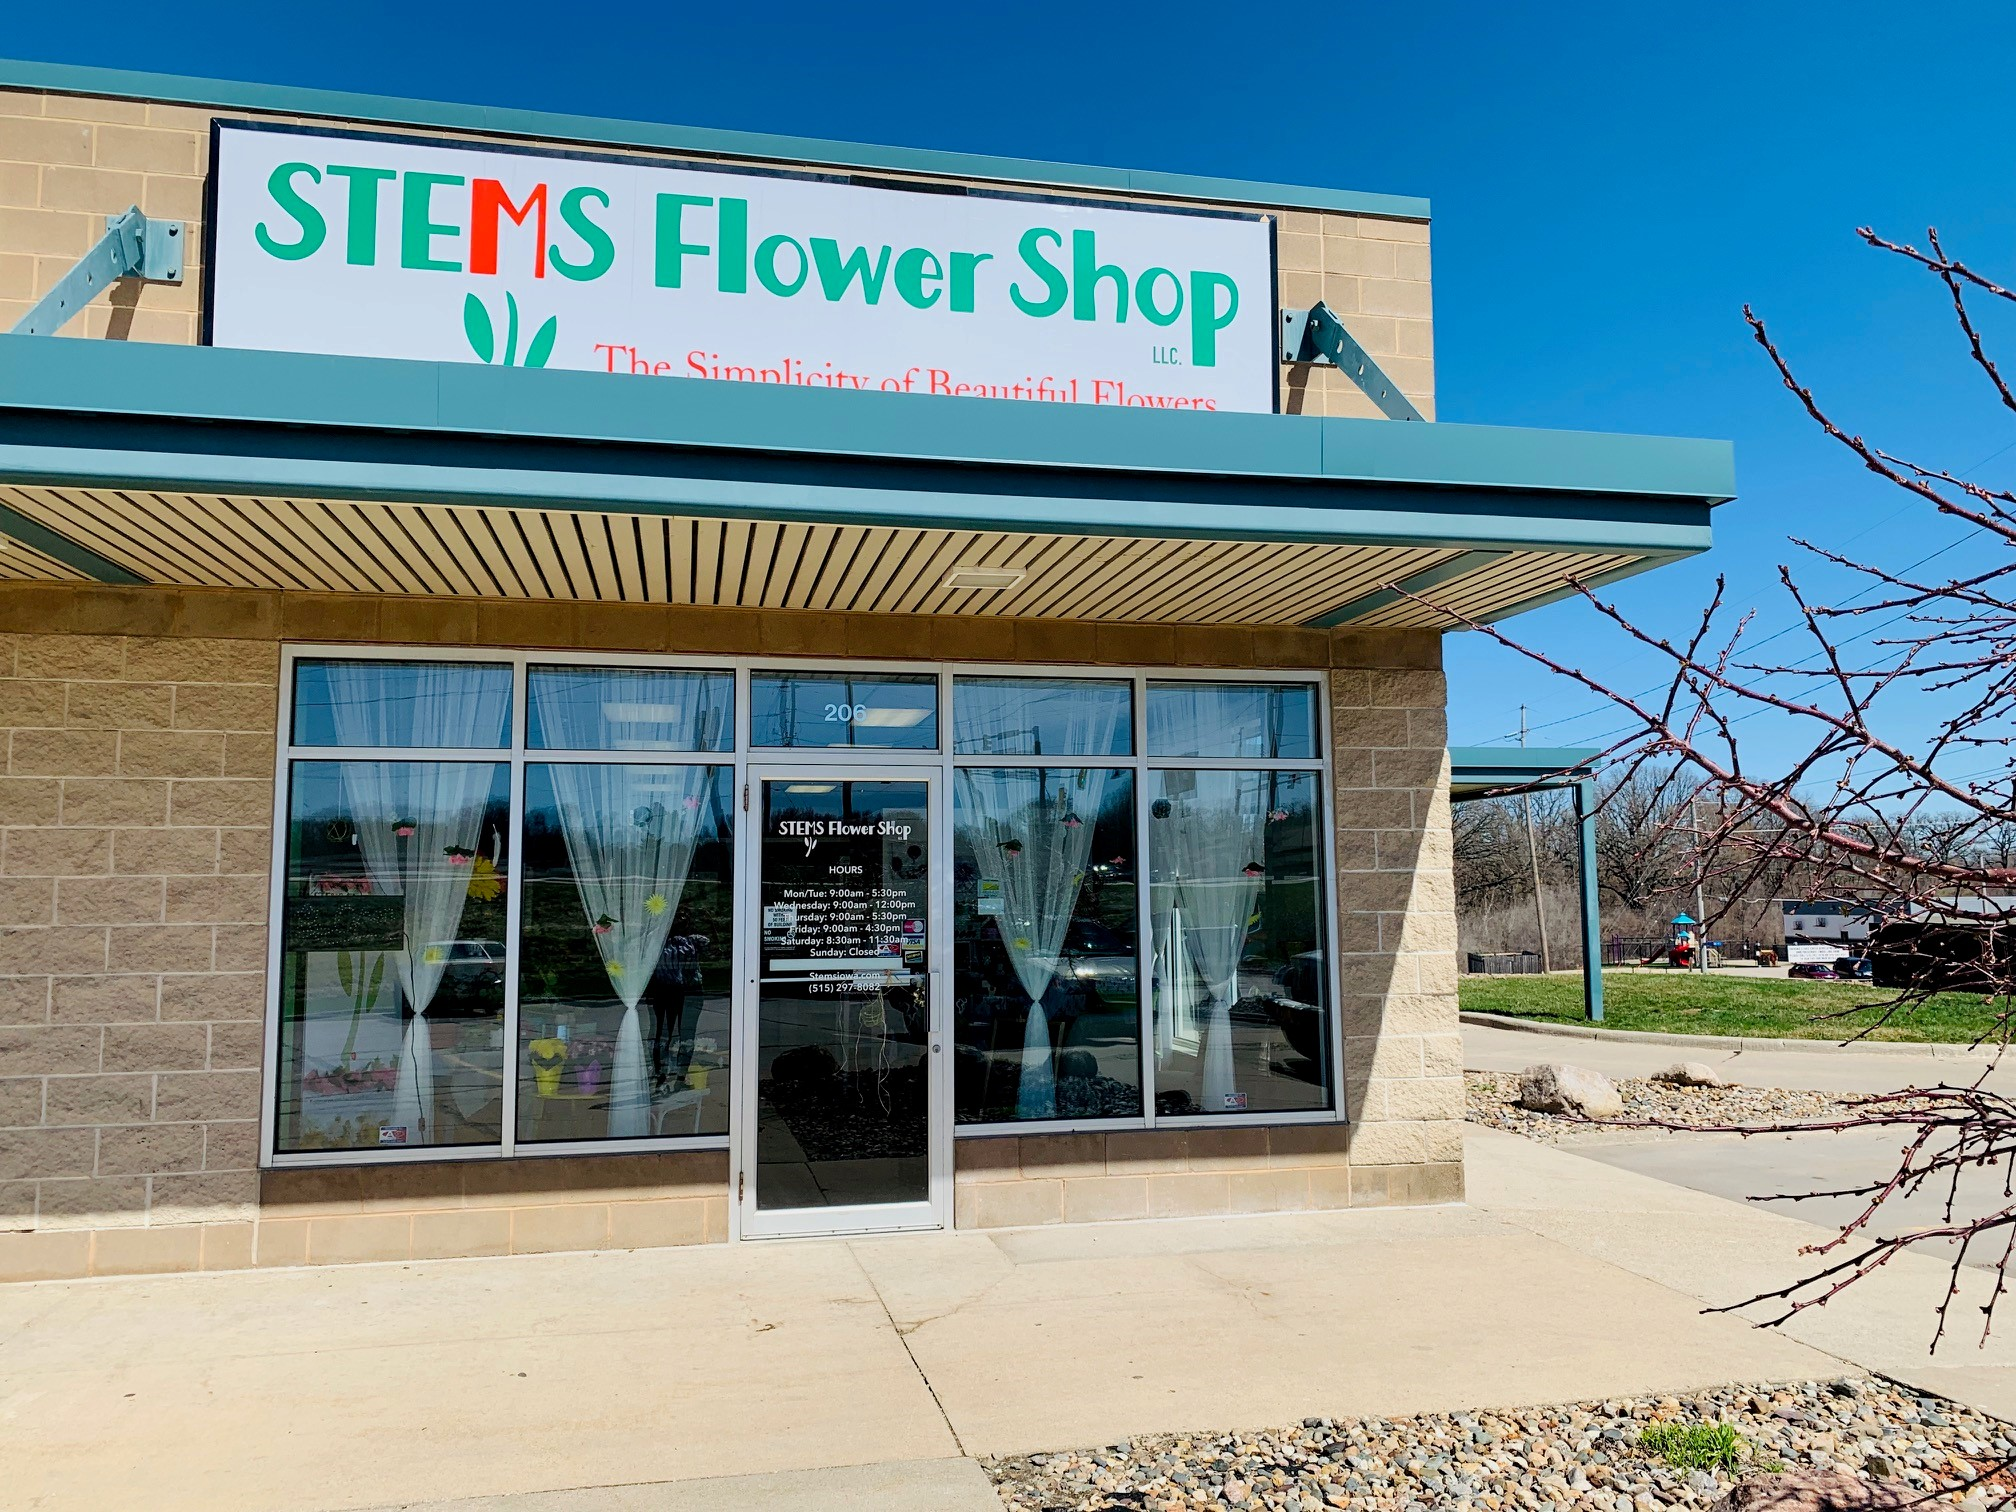 STEMS Flower Shop